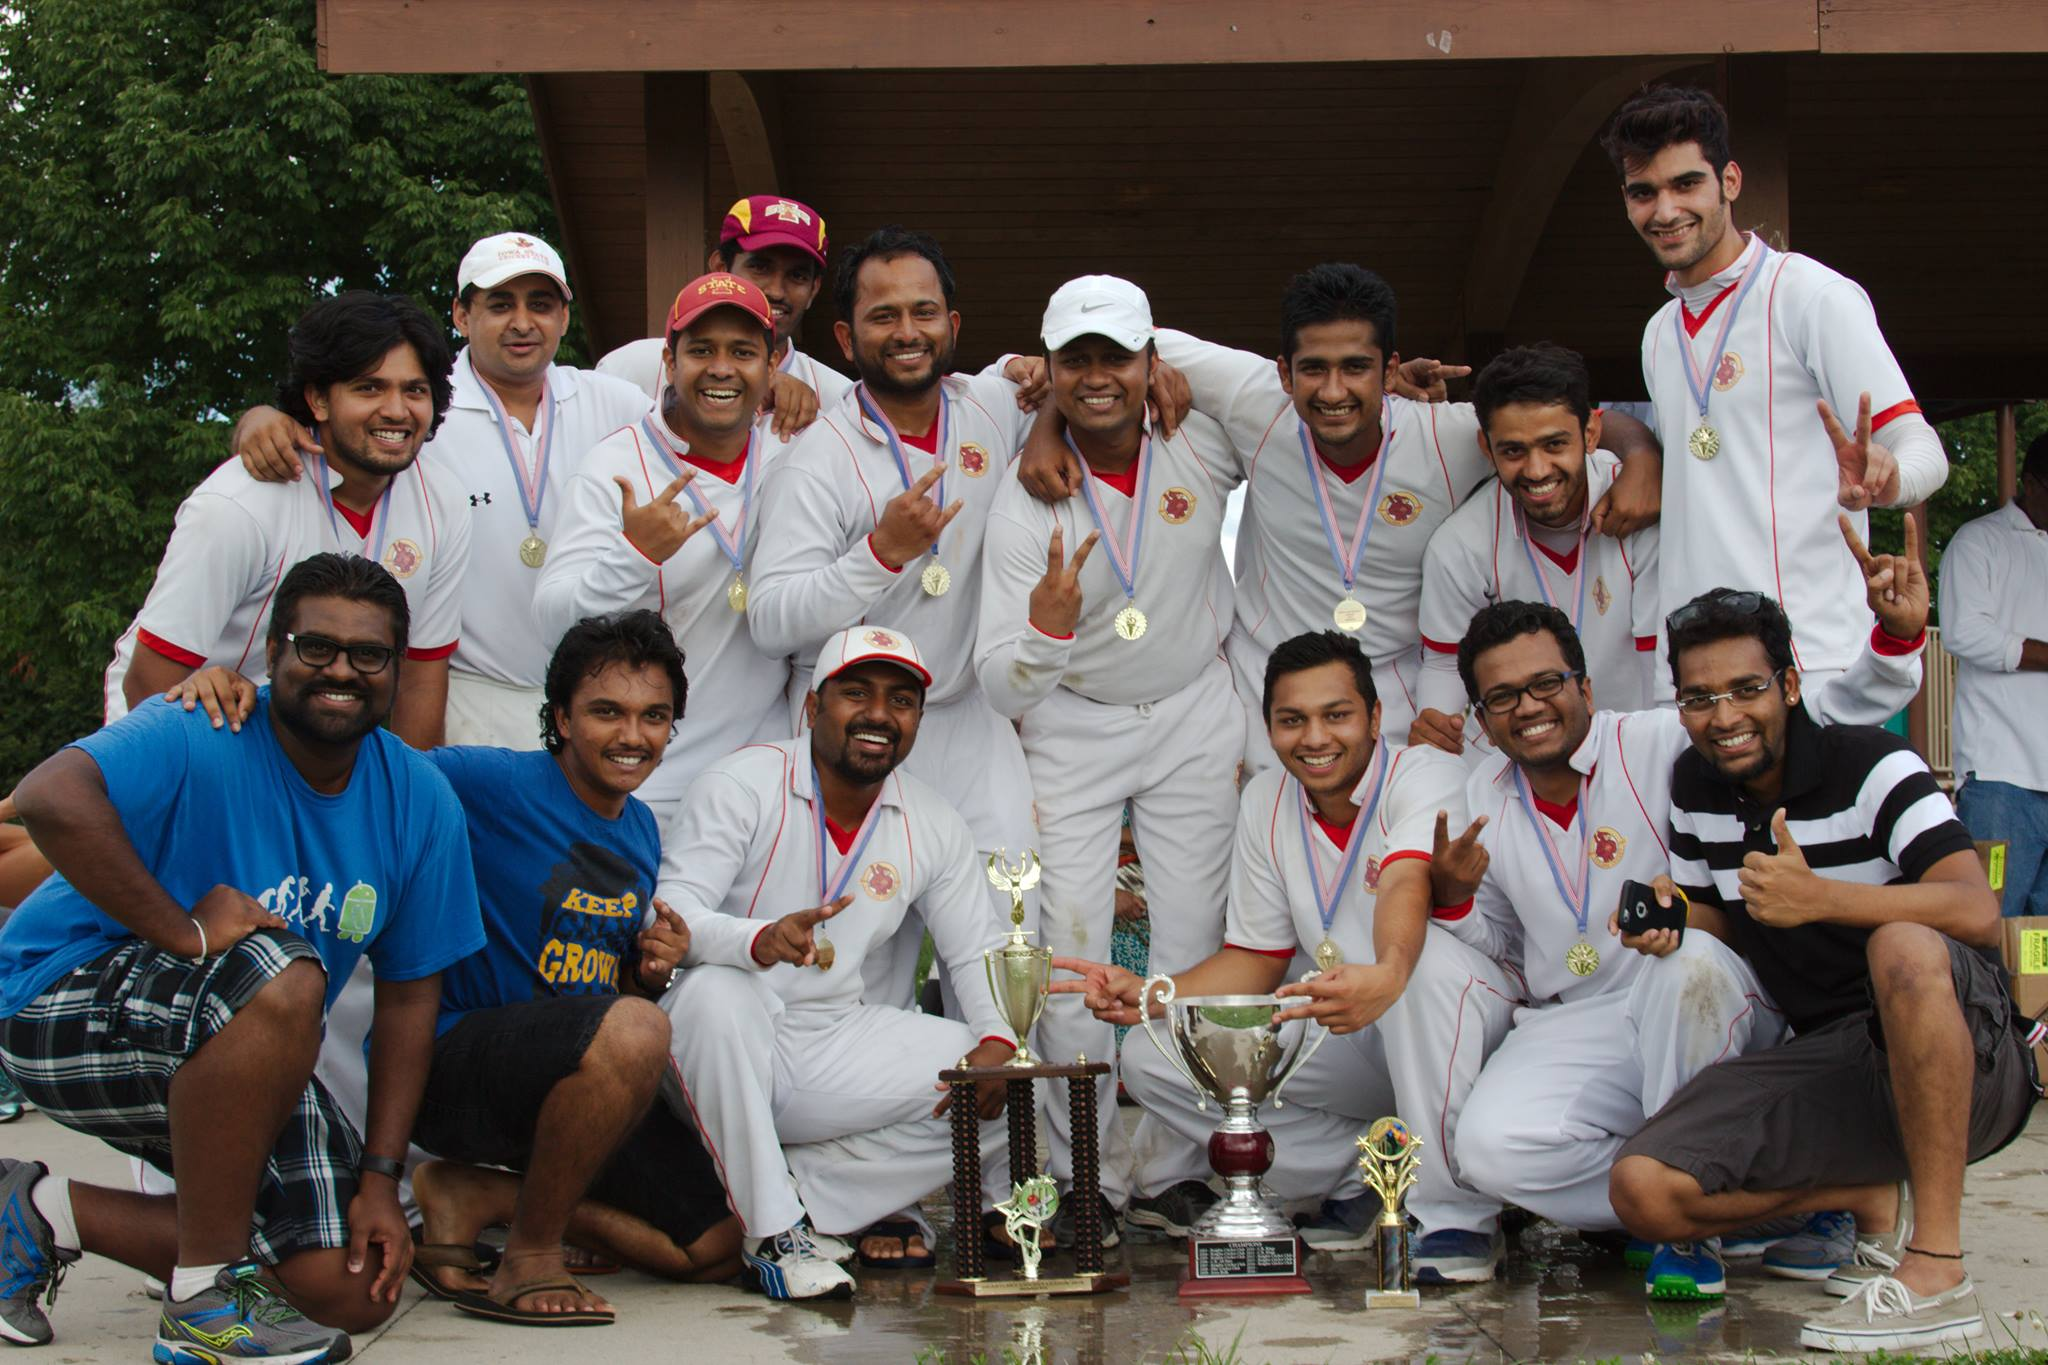 Photo of Avinash and teammates with trophy